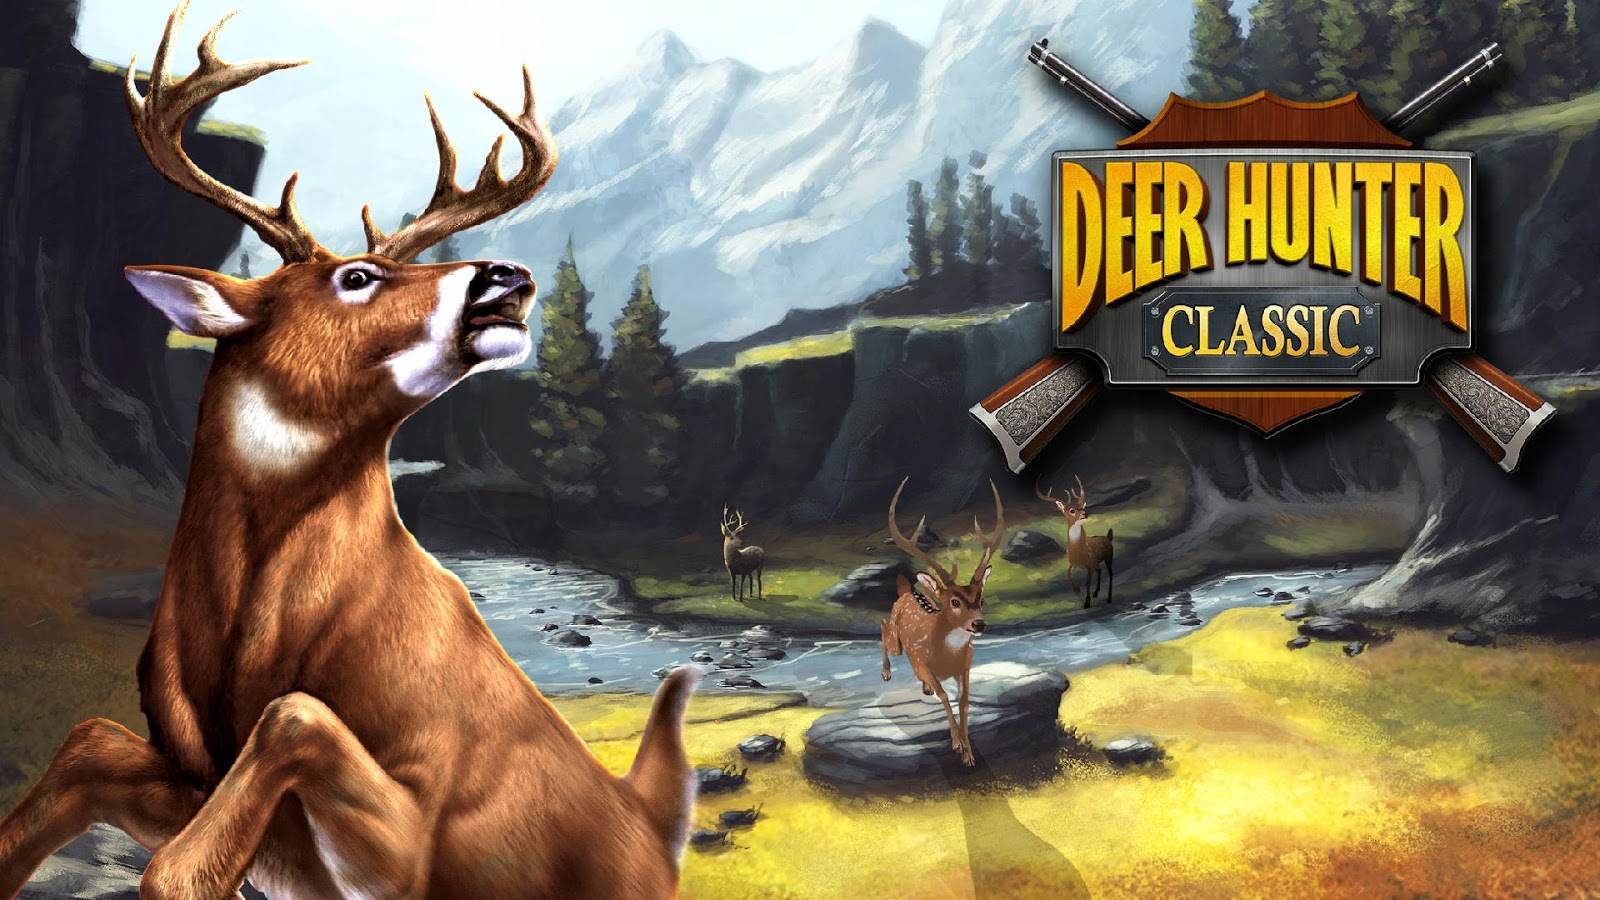 DEER HUNTER CLASSIC Screenshot 18